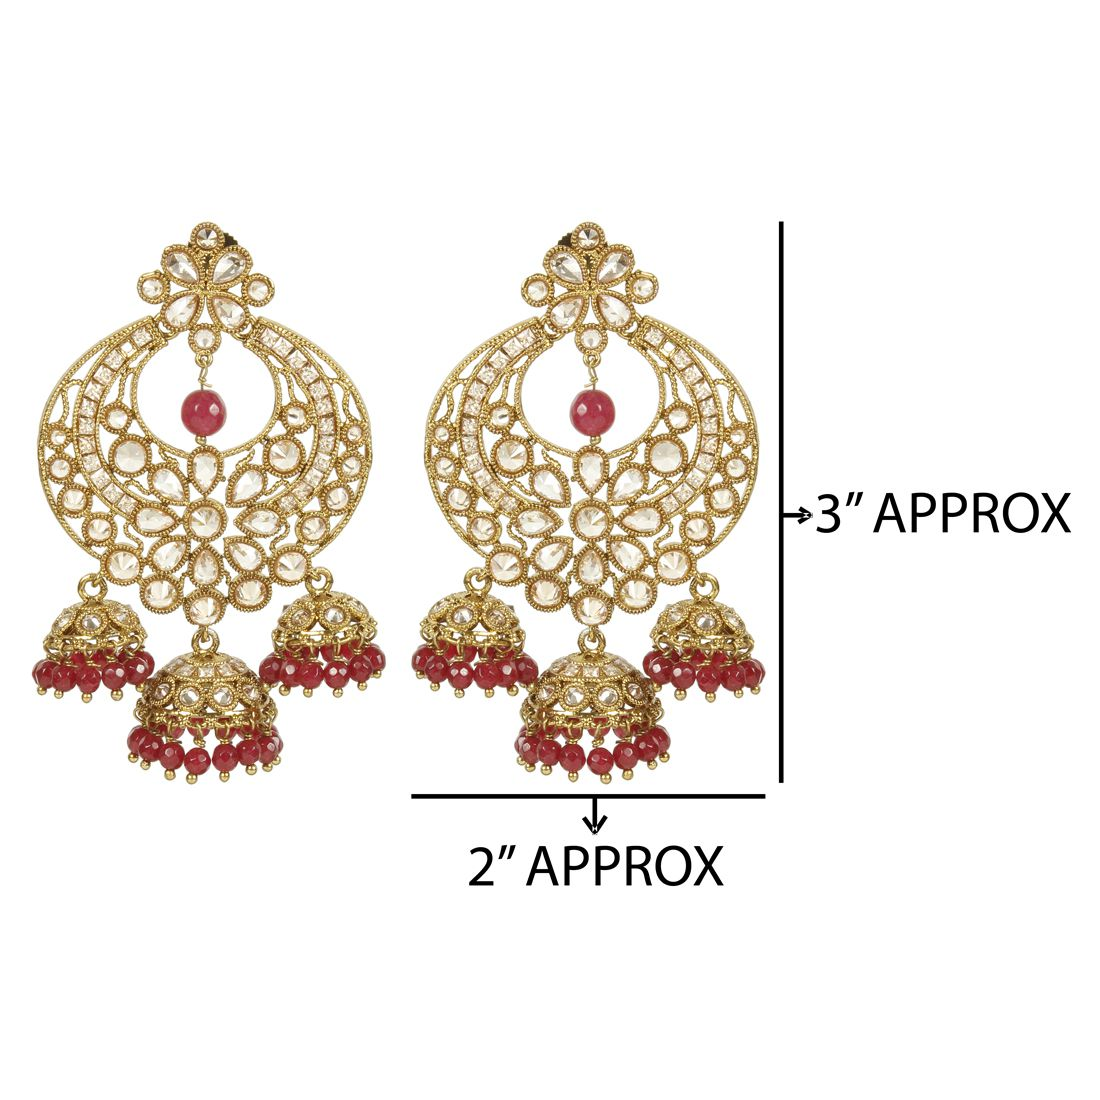 MUCH MORE  Amazing Polki Earrings With Crystal & Ruby Stone for Women's